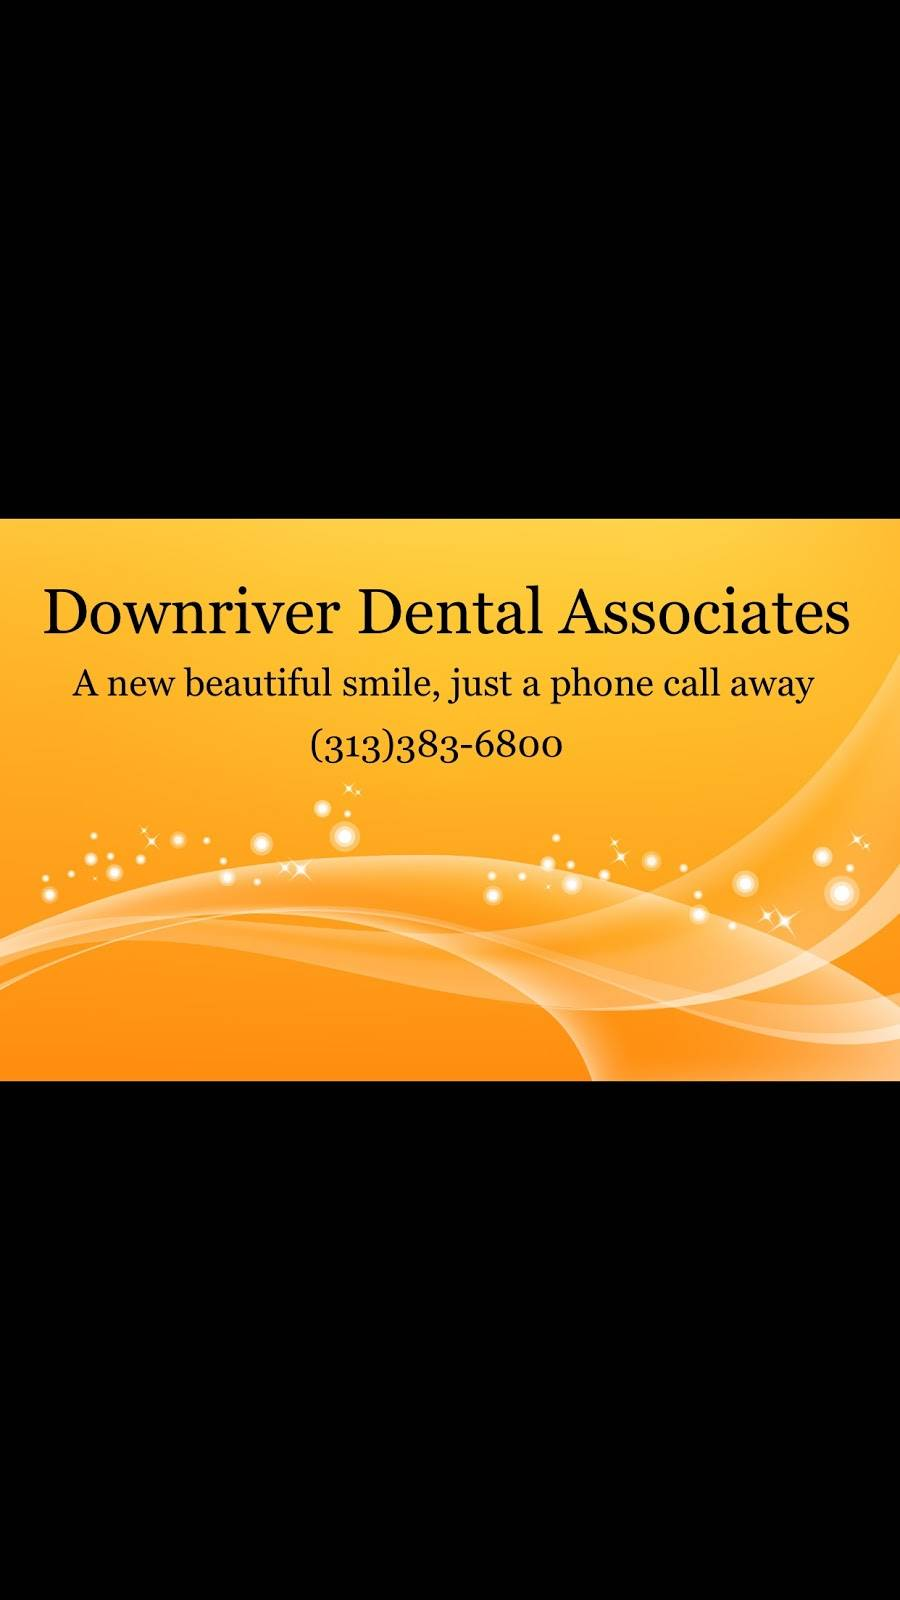 Downriver Dental Associates - dentist  | Photo 1 of 2 | Address: 3830 Fort St, Lincoln Park, MI 48146, USA | Phone: (313) 383-6800